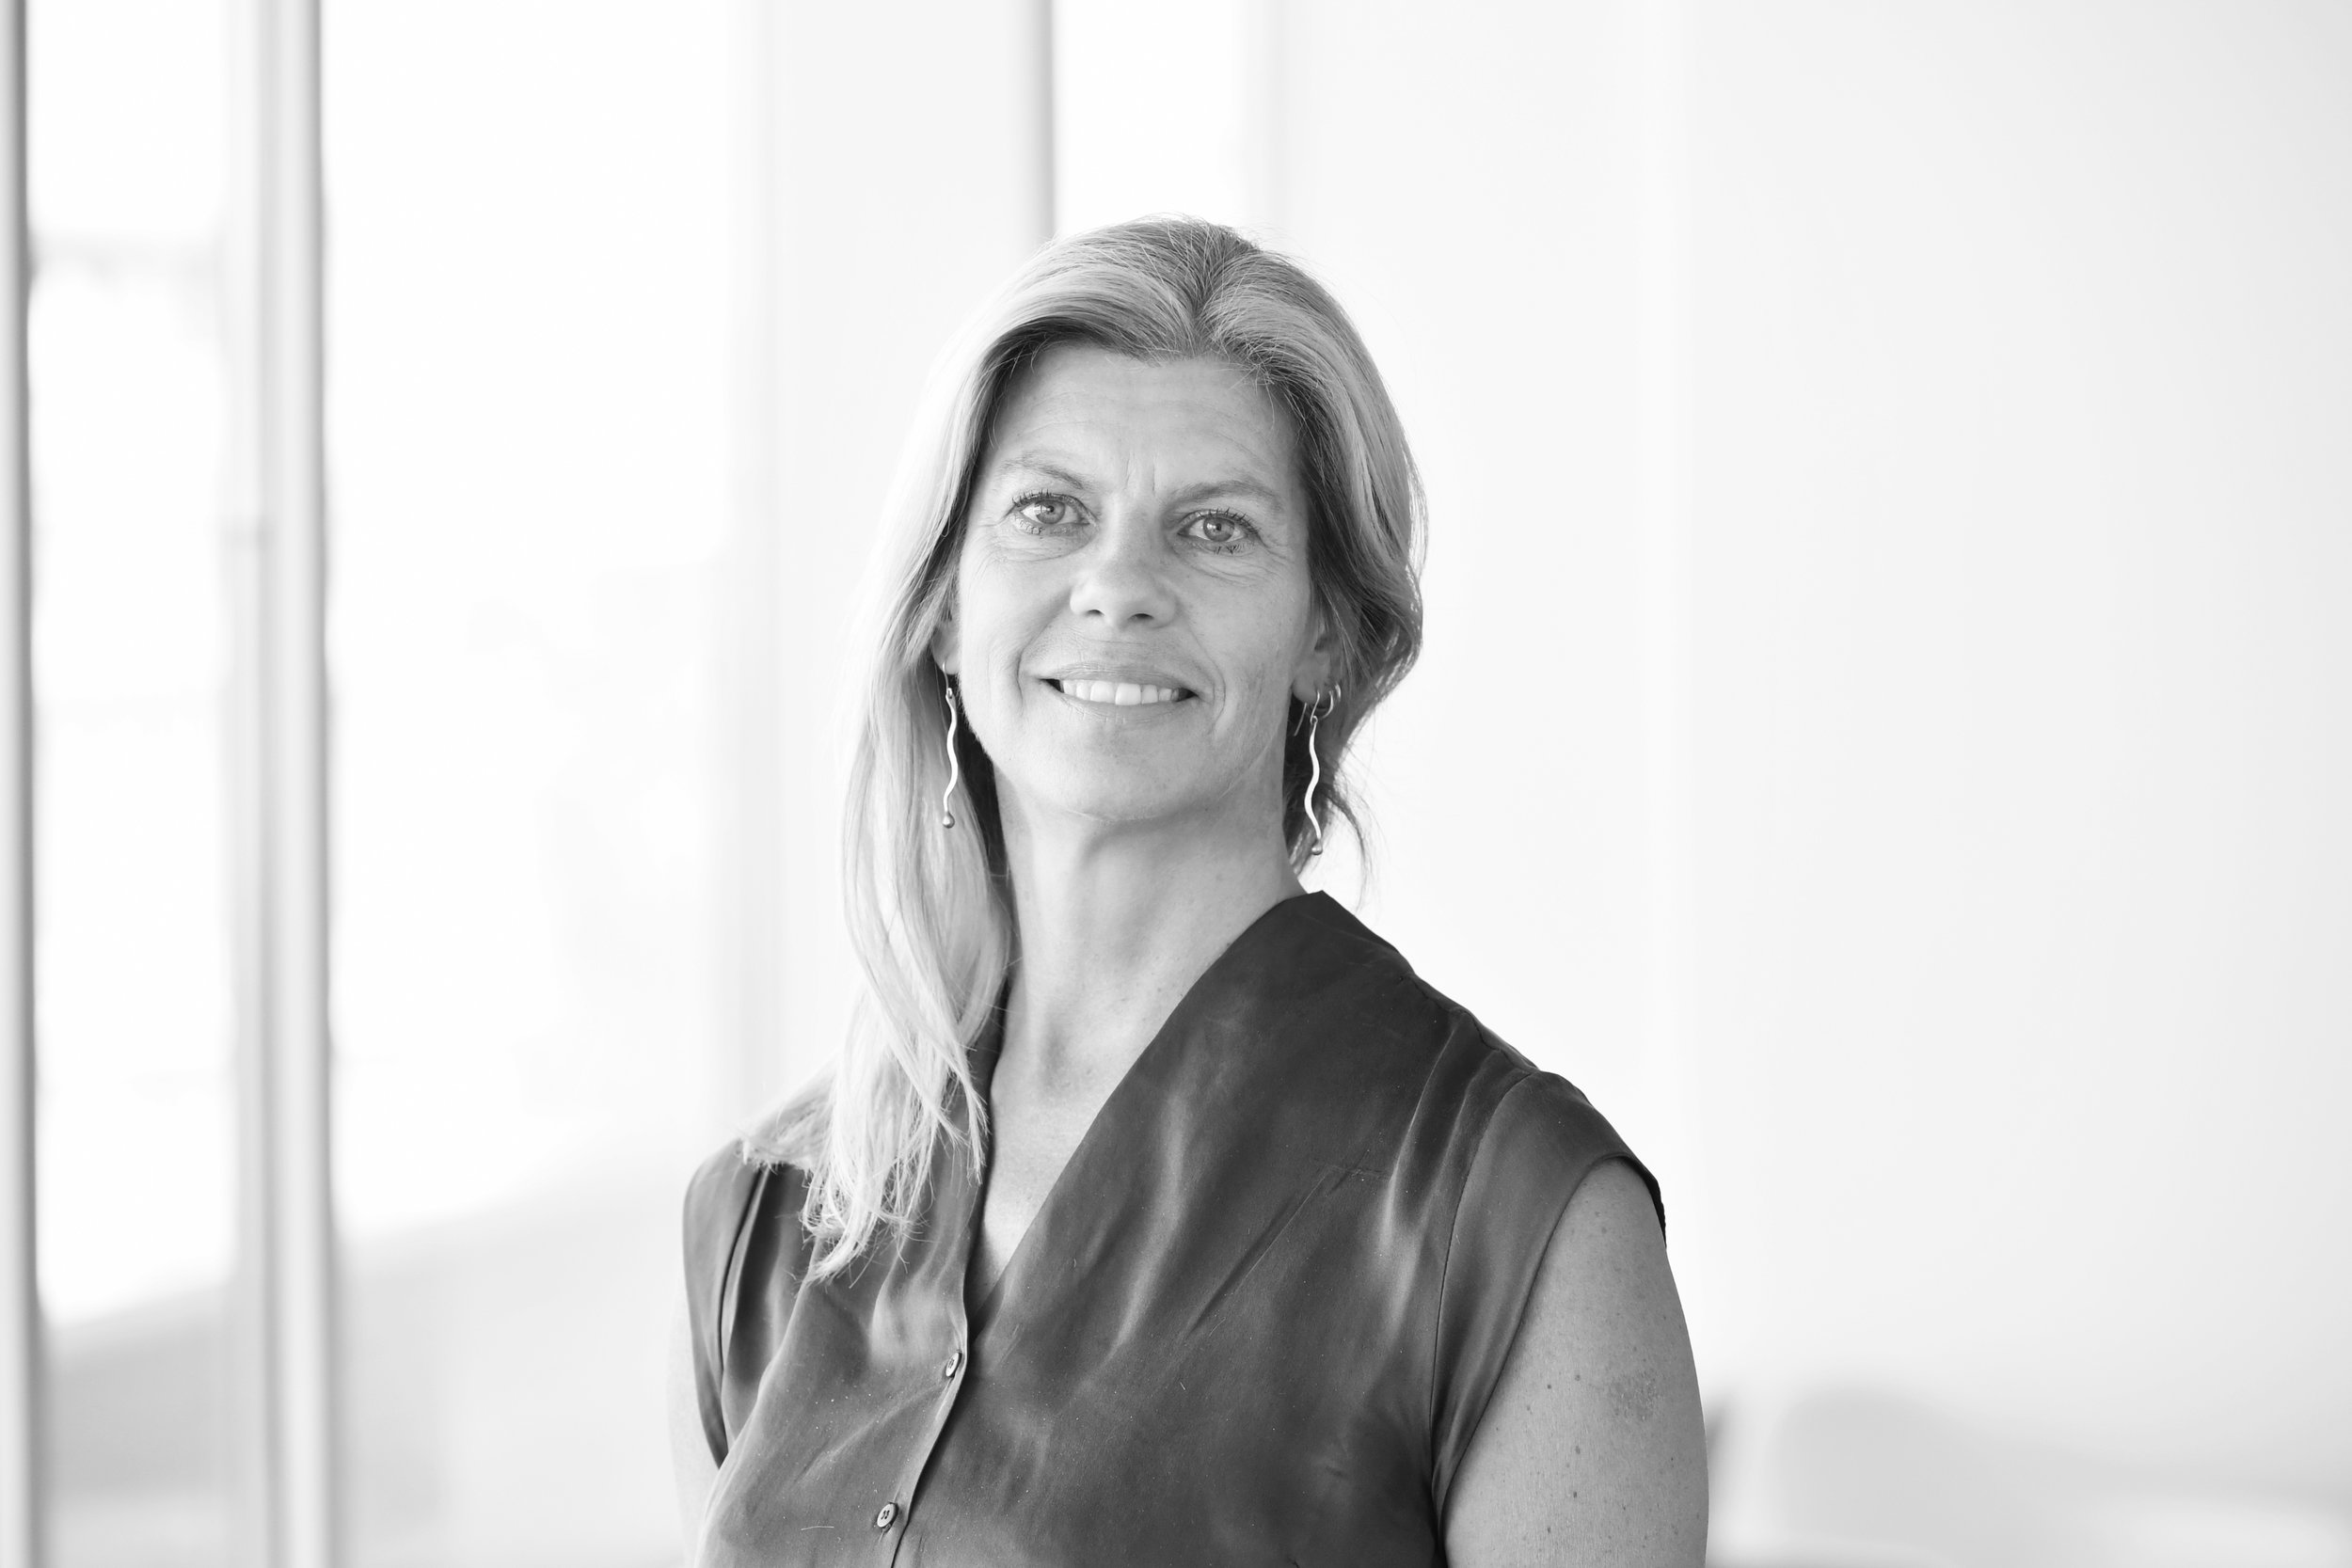 ING-MARIE BIGERT MÖLLER - Office ManagerExtensive experience in professional services. Previous roles at McKinsey & Company, Nordea, and Invacare. Read more →+46 (0)8 503 855 02ibm@nordicinterim.com